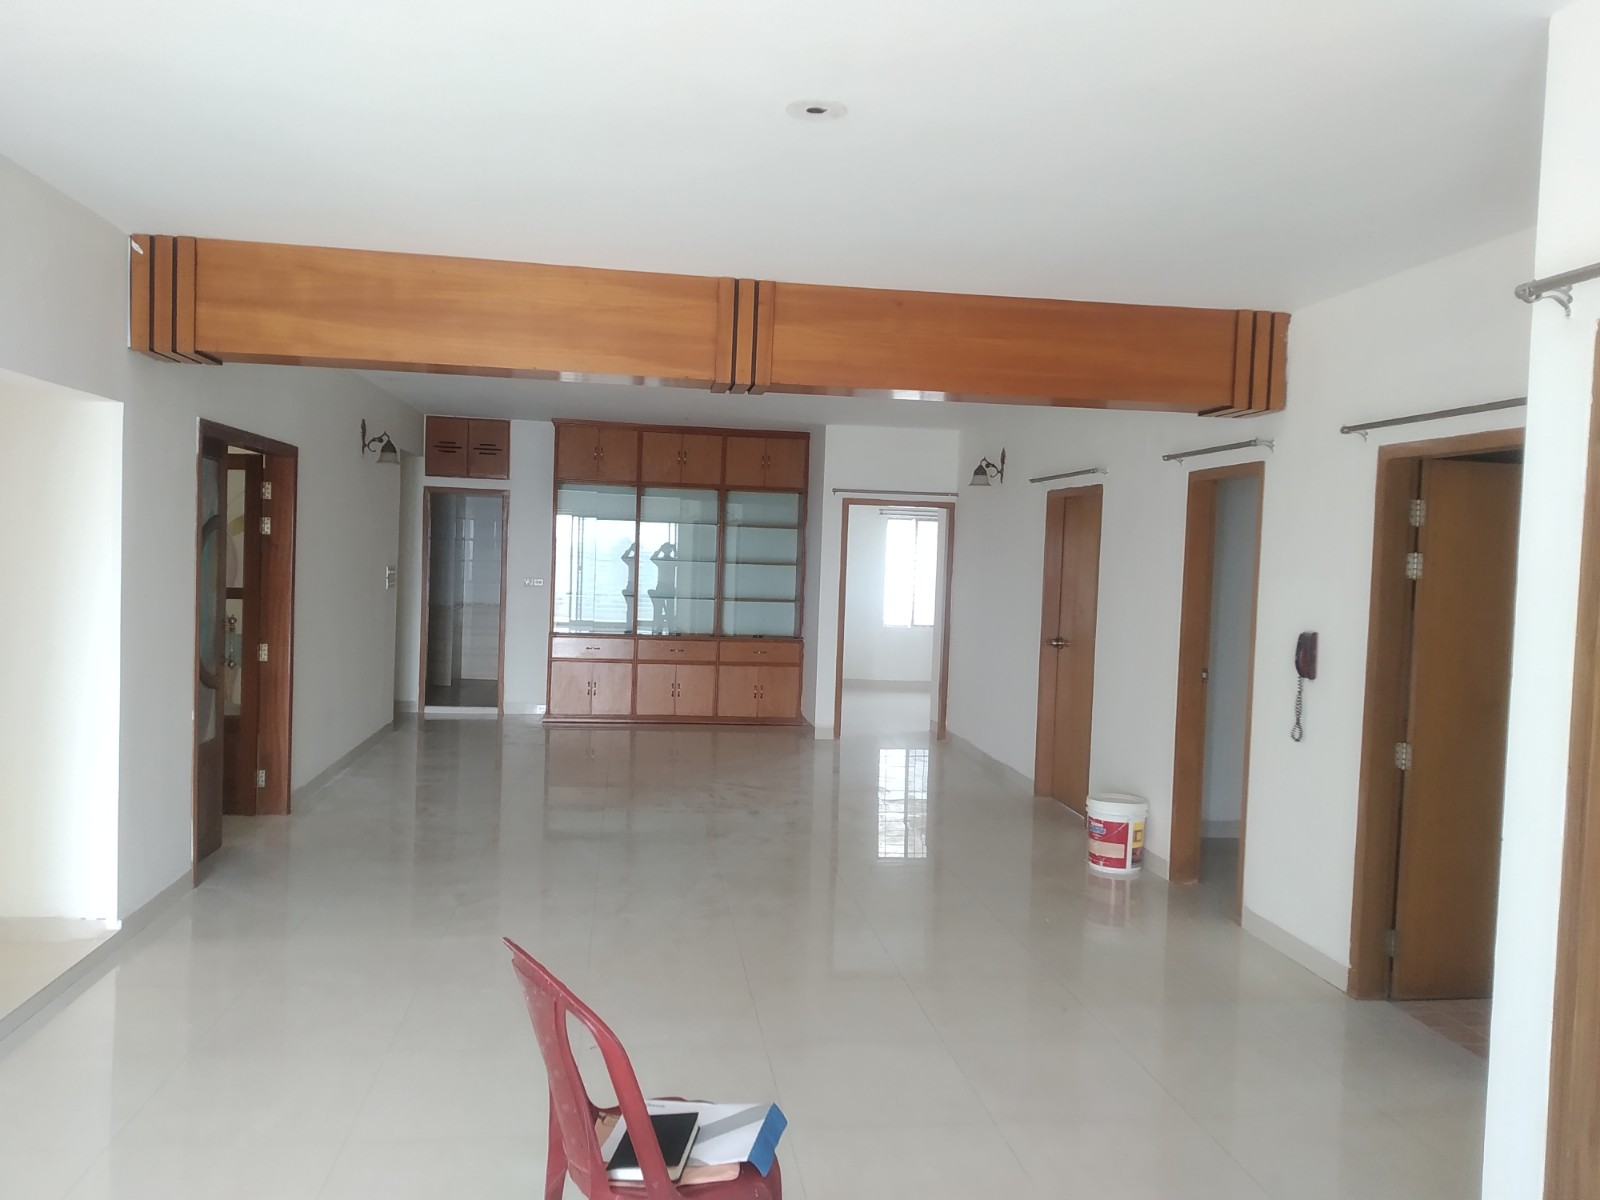 2810-sft-apartment-for-sale-at-dhanmondi-14th-floor-030959